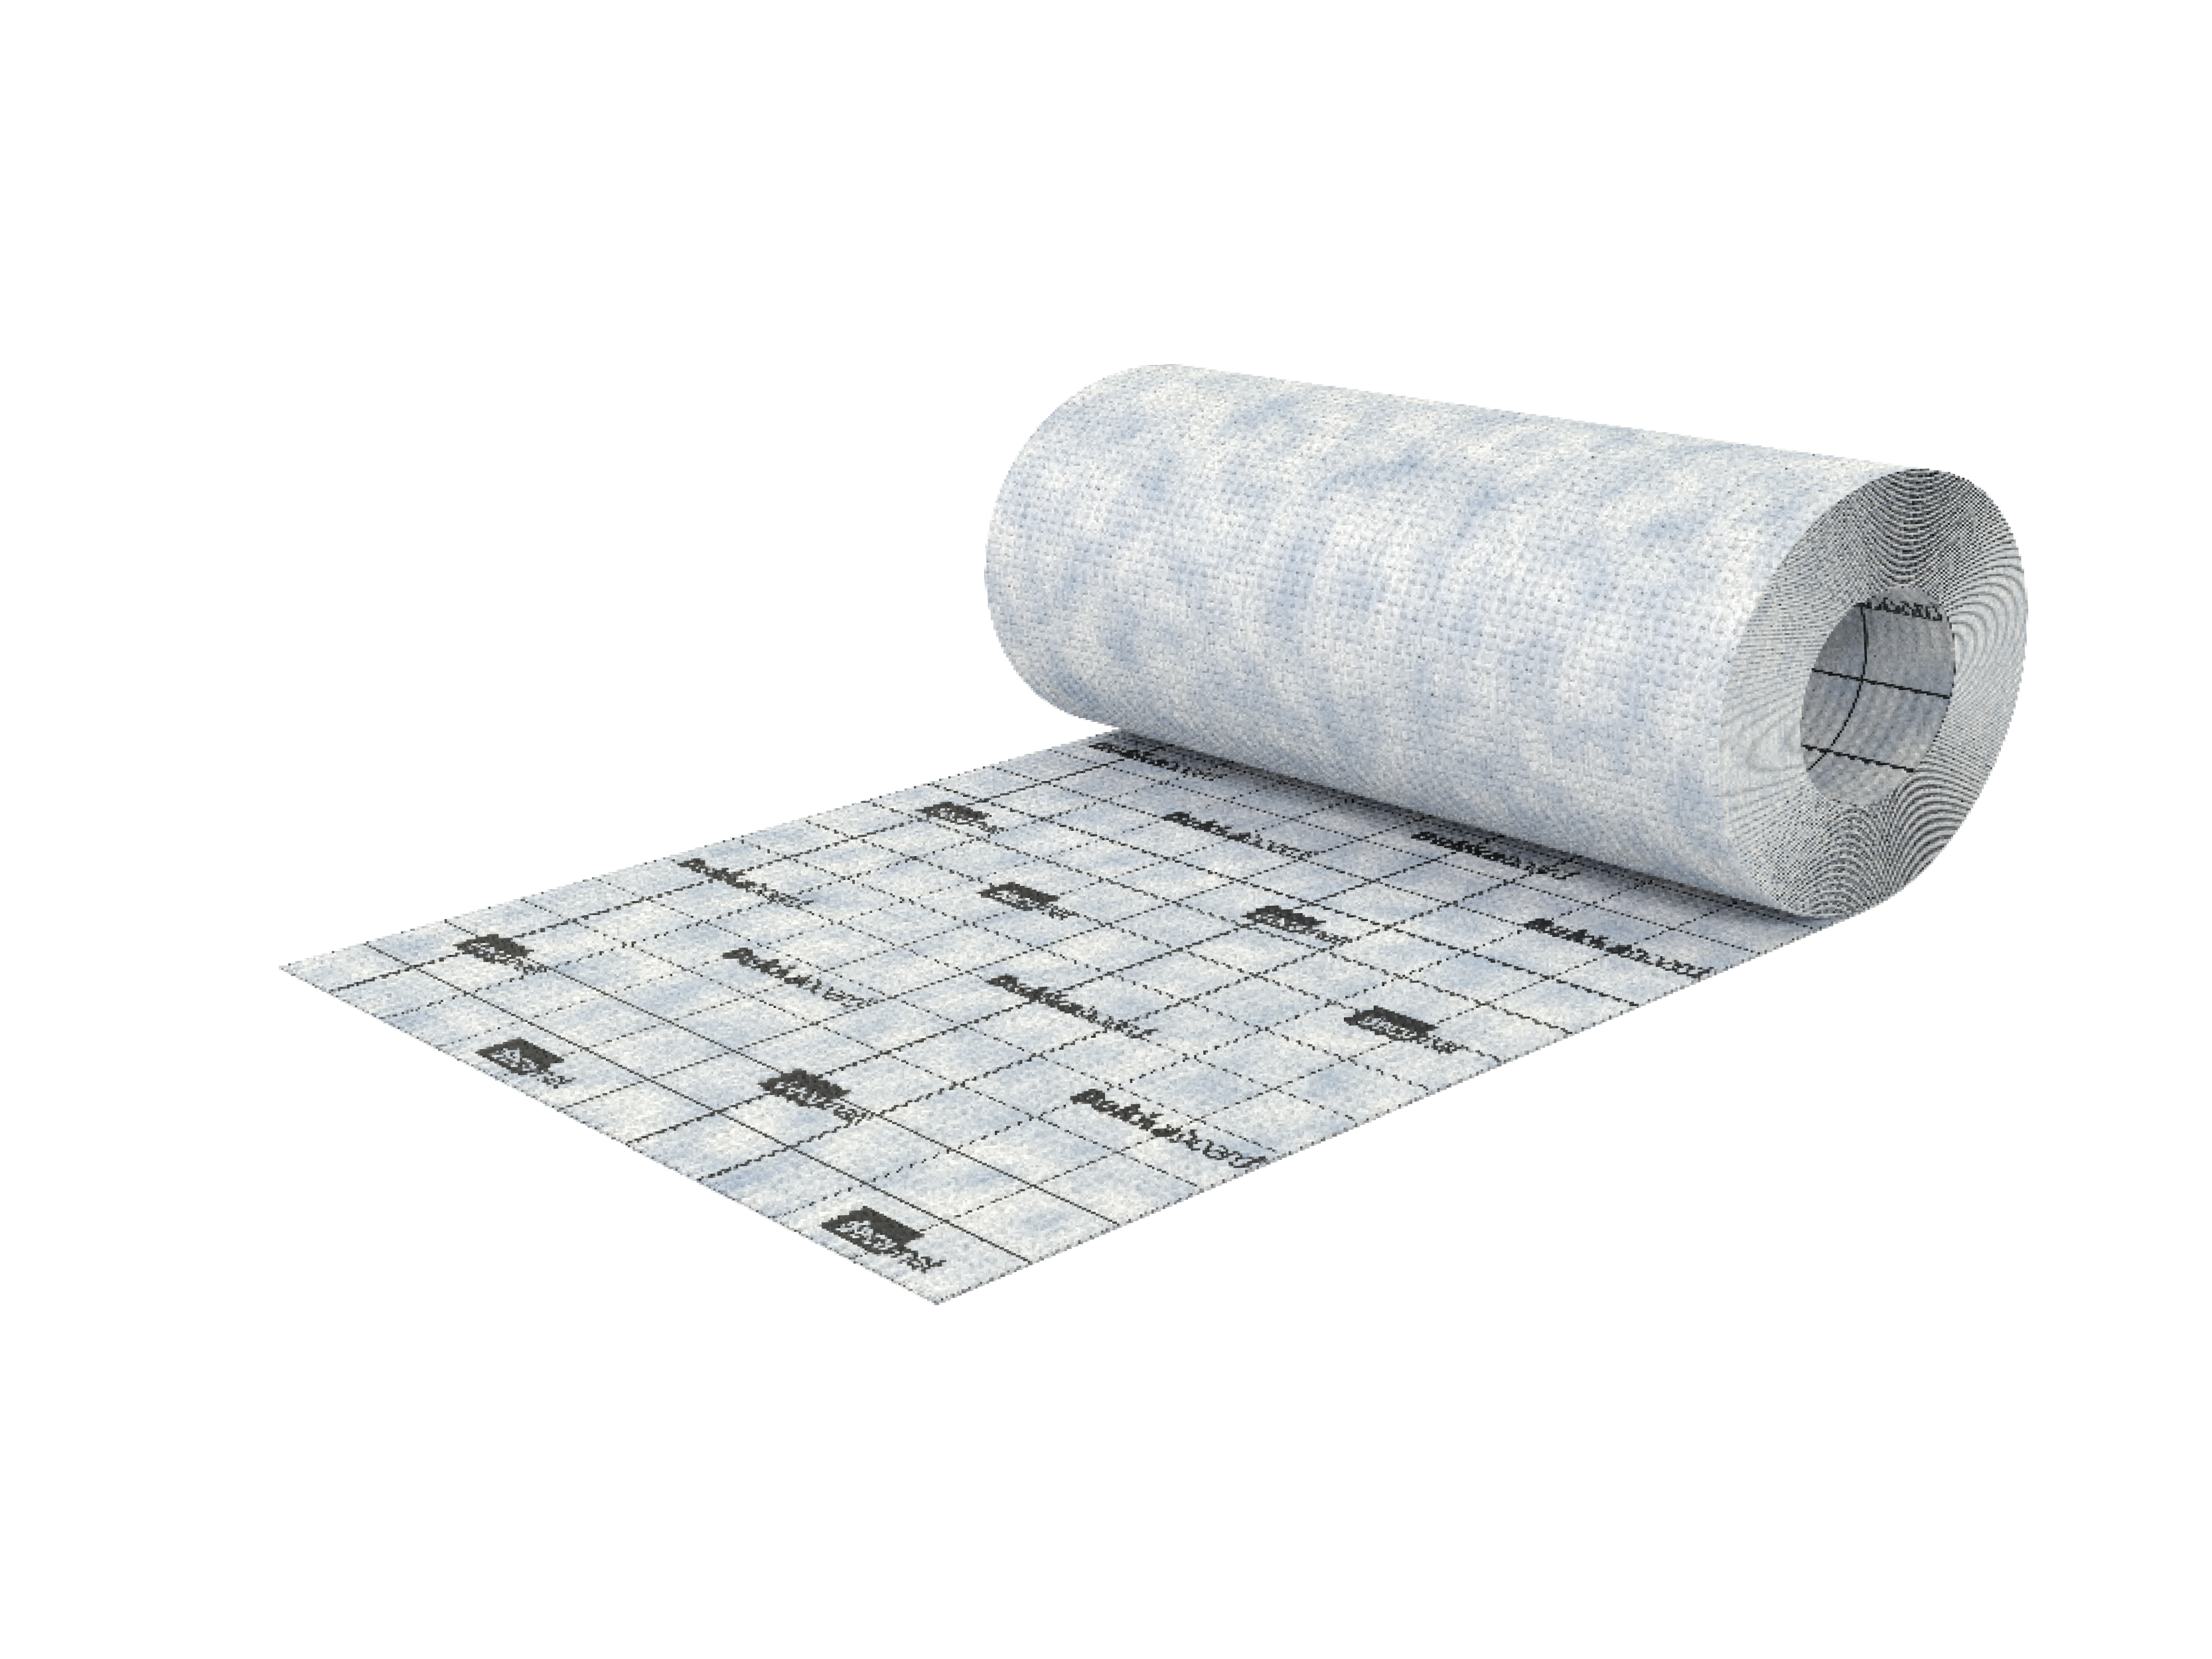 Introducing the Dukkaboard Deco Matting – An innovative one-step underlayment system